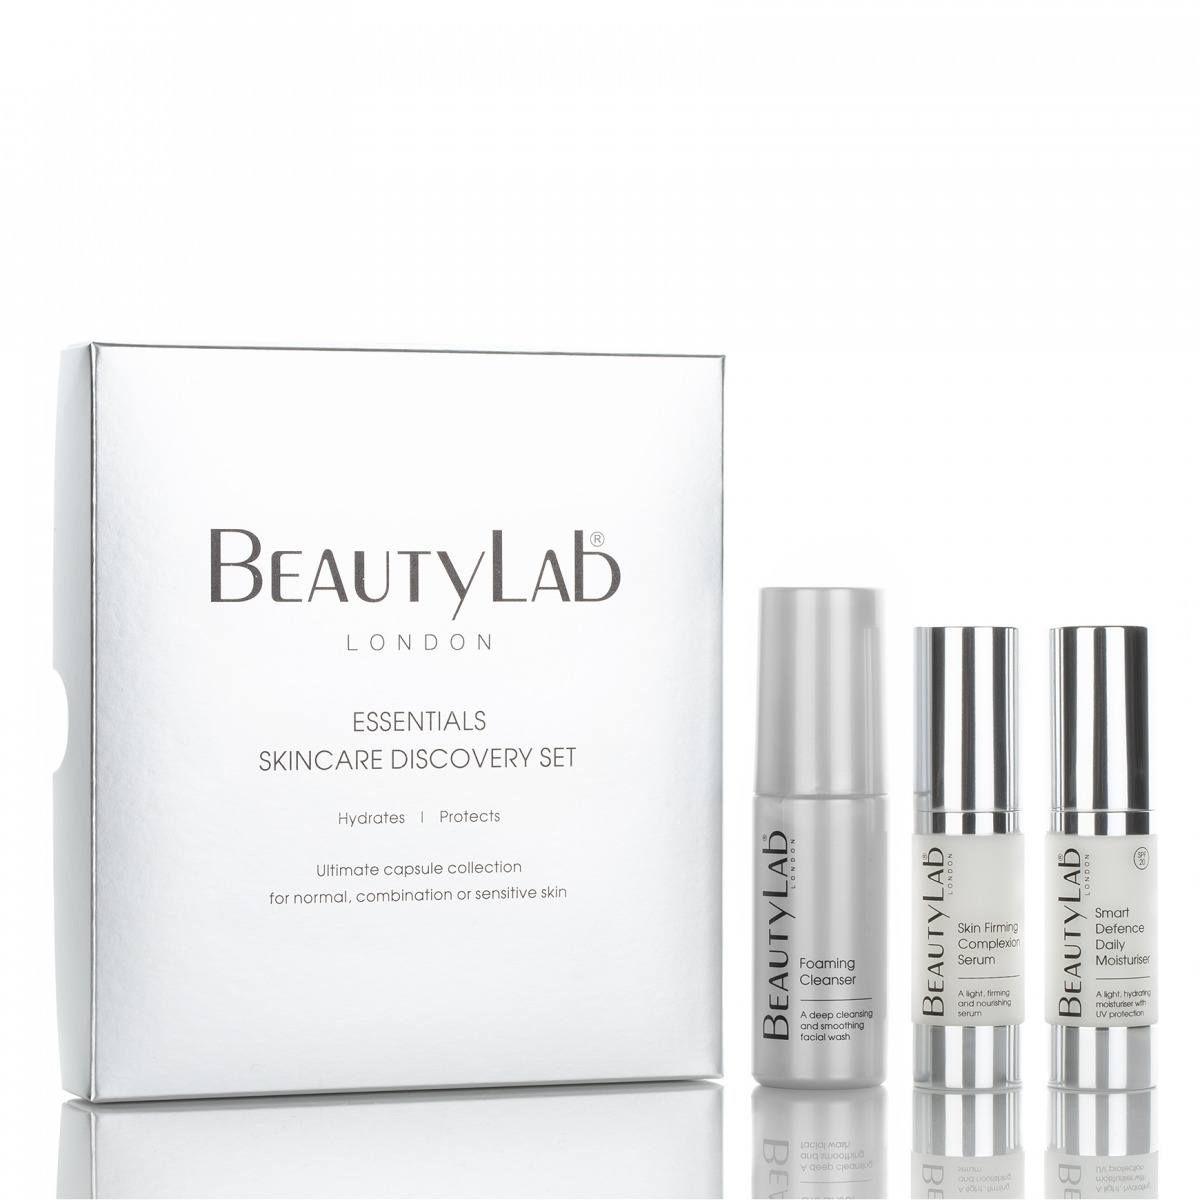 ssentials Skincare Discovery Set